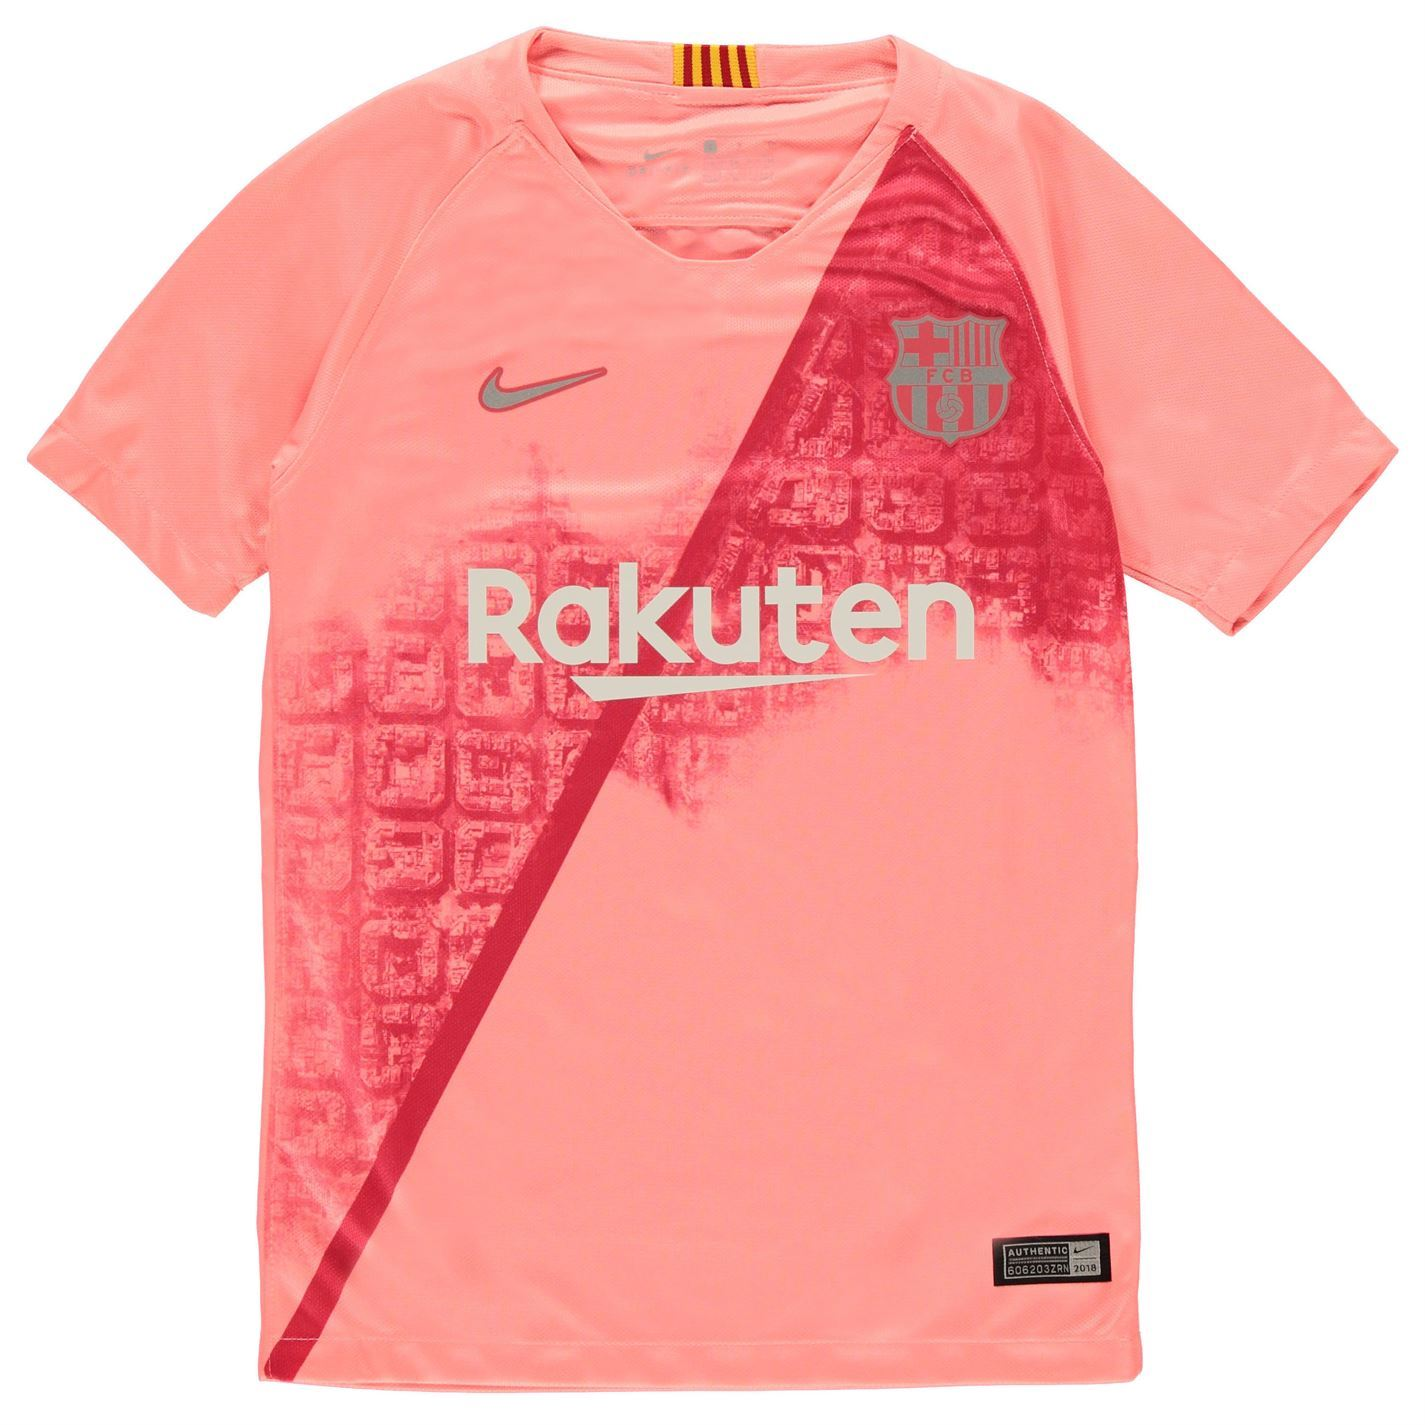 on sale db5dc b4ee3 Details about Nike Barcelona Third Jersey 2018 2019 Juniors Pink/Silver  Football Soccer Shirt